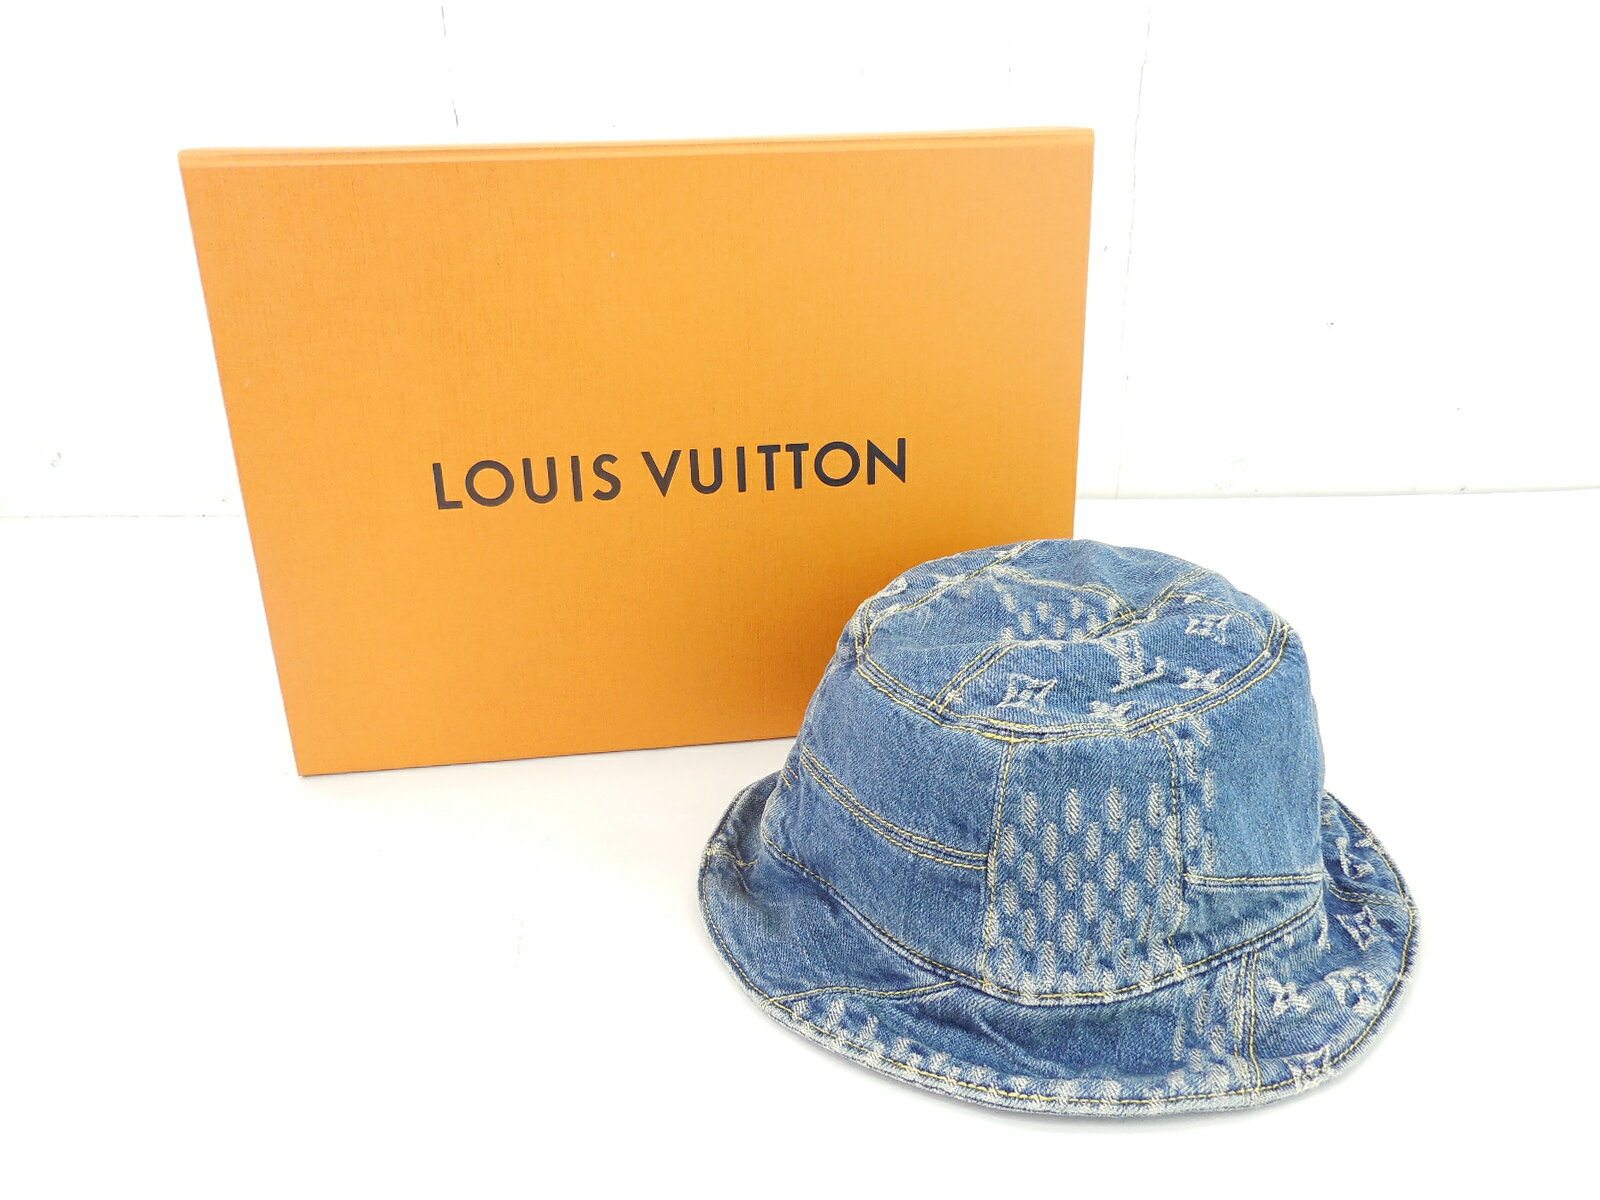 メンズ帽子, ハット LOUIS VUITTON Virgil Abloh NIGO 20AW MP2734 size60 JSB